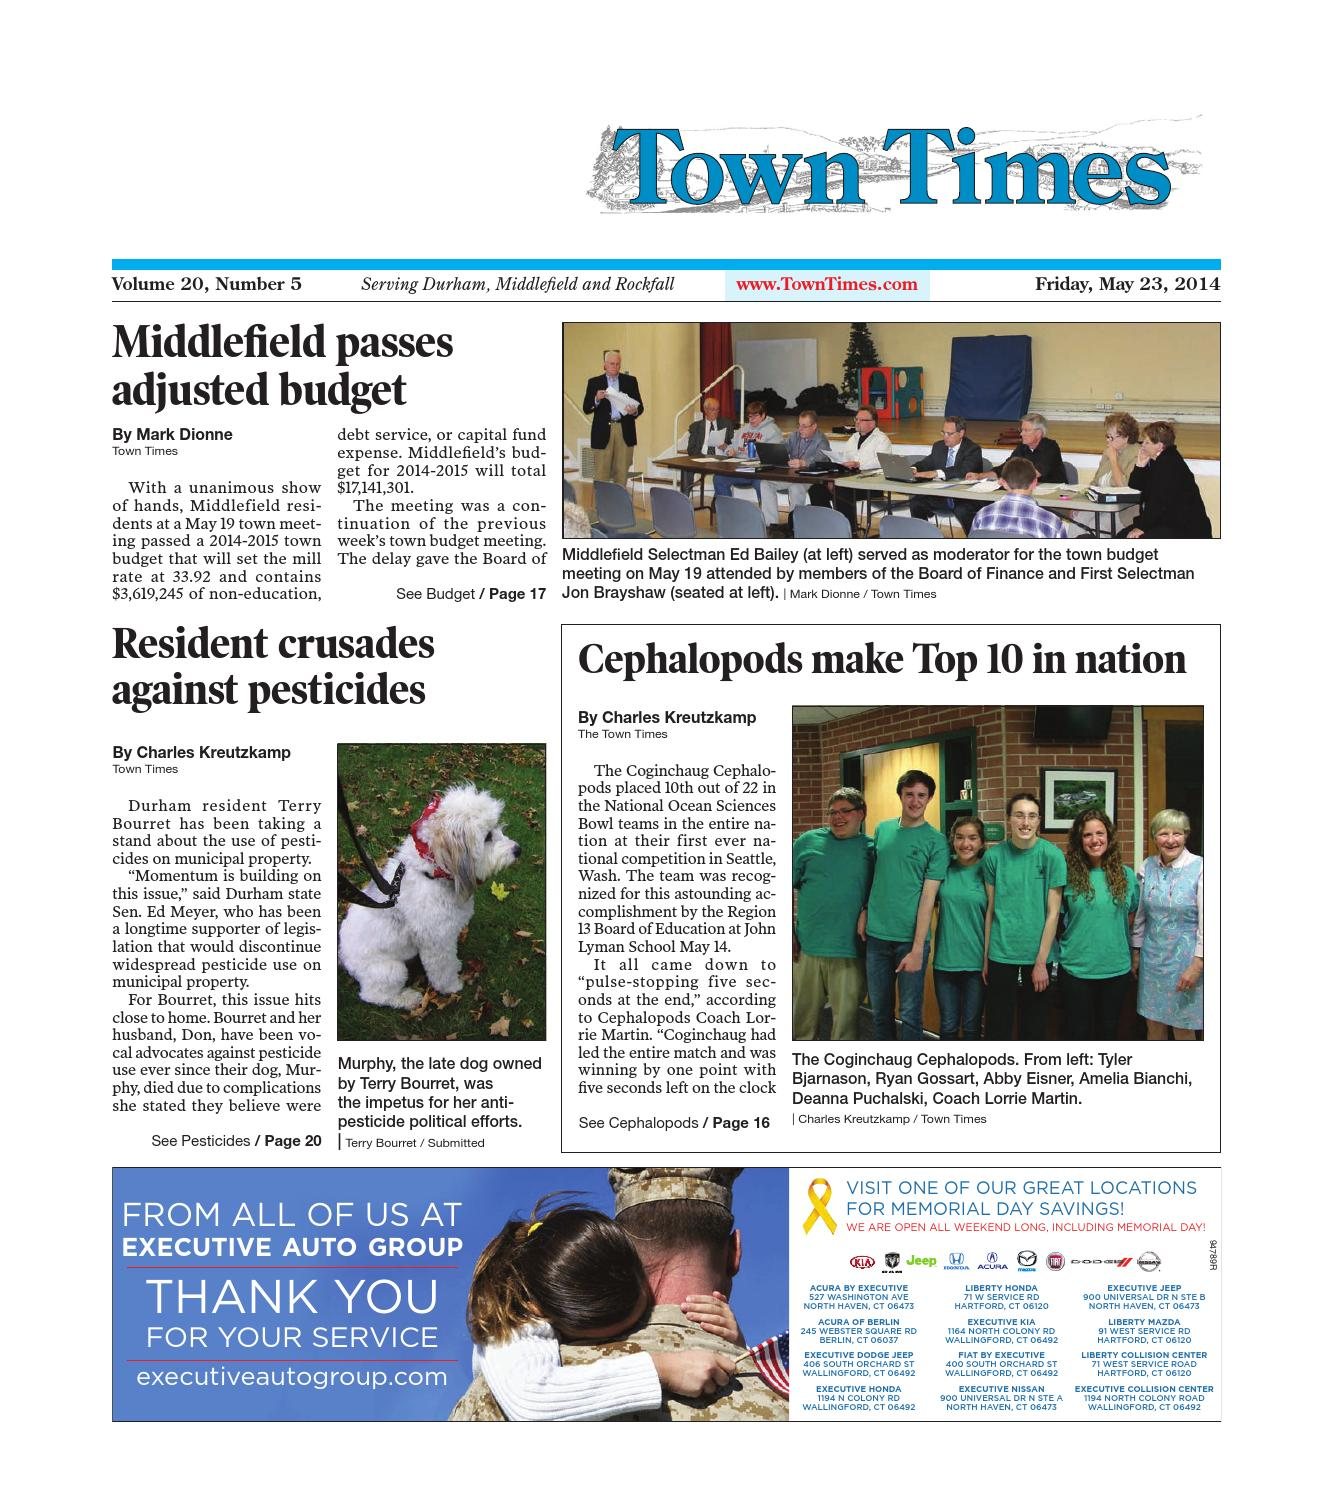 Ttmay22 by Town Times Newspaper issuu